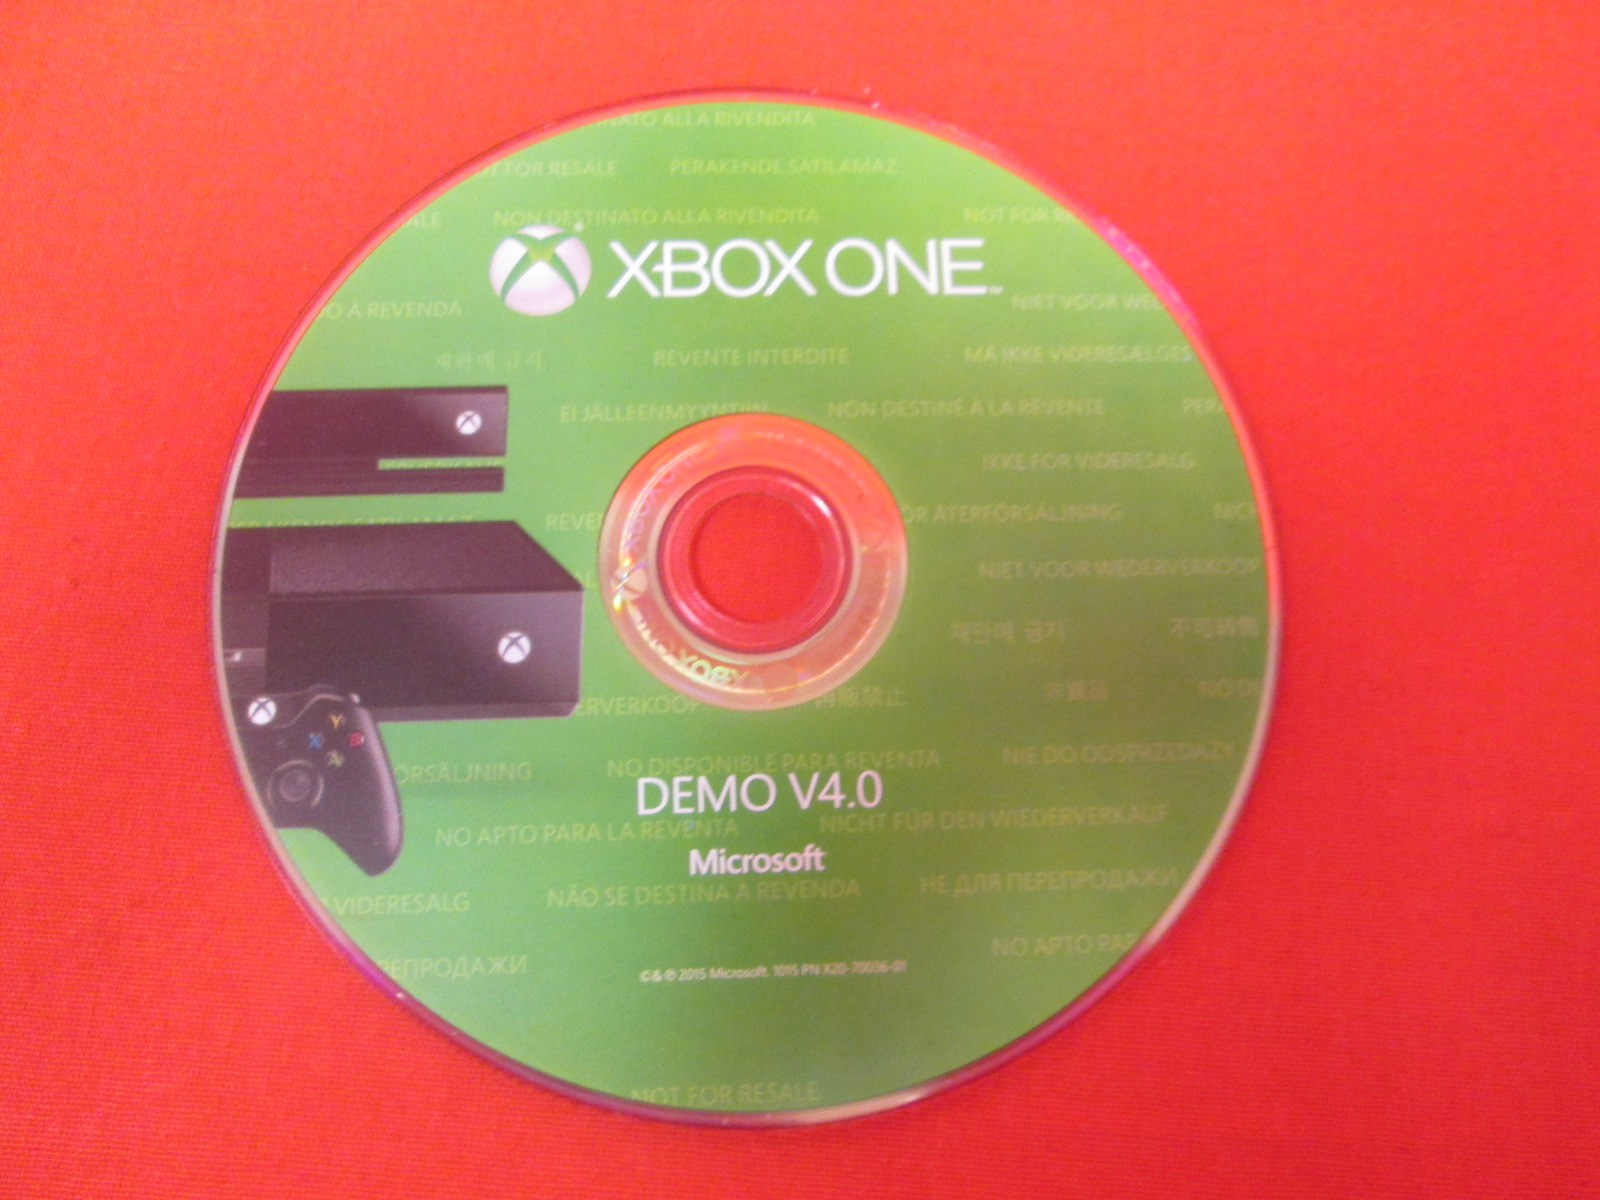 Demo V4.0 Game Disc For Xbox One